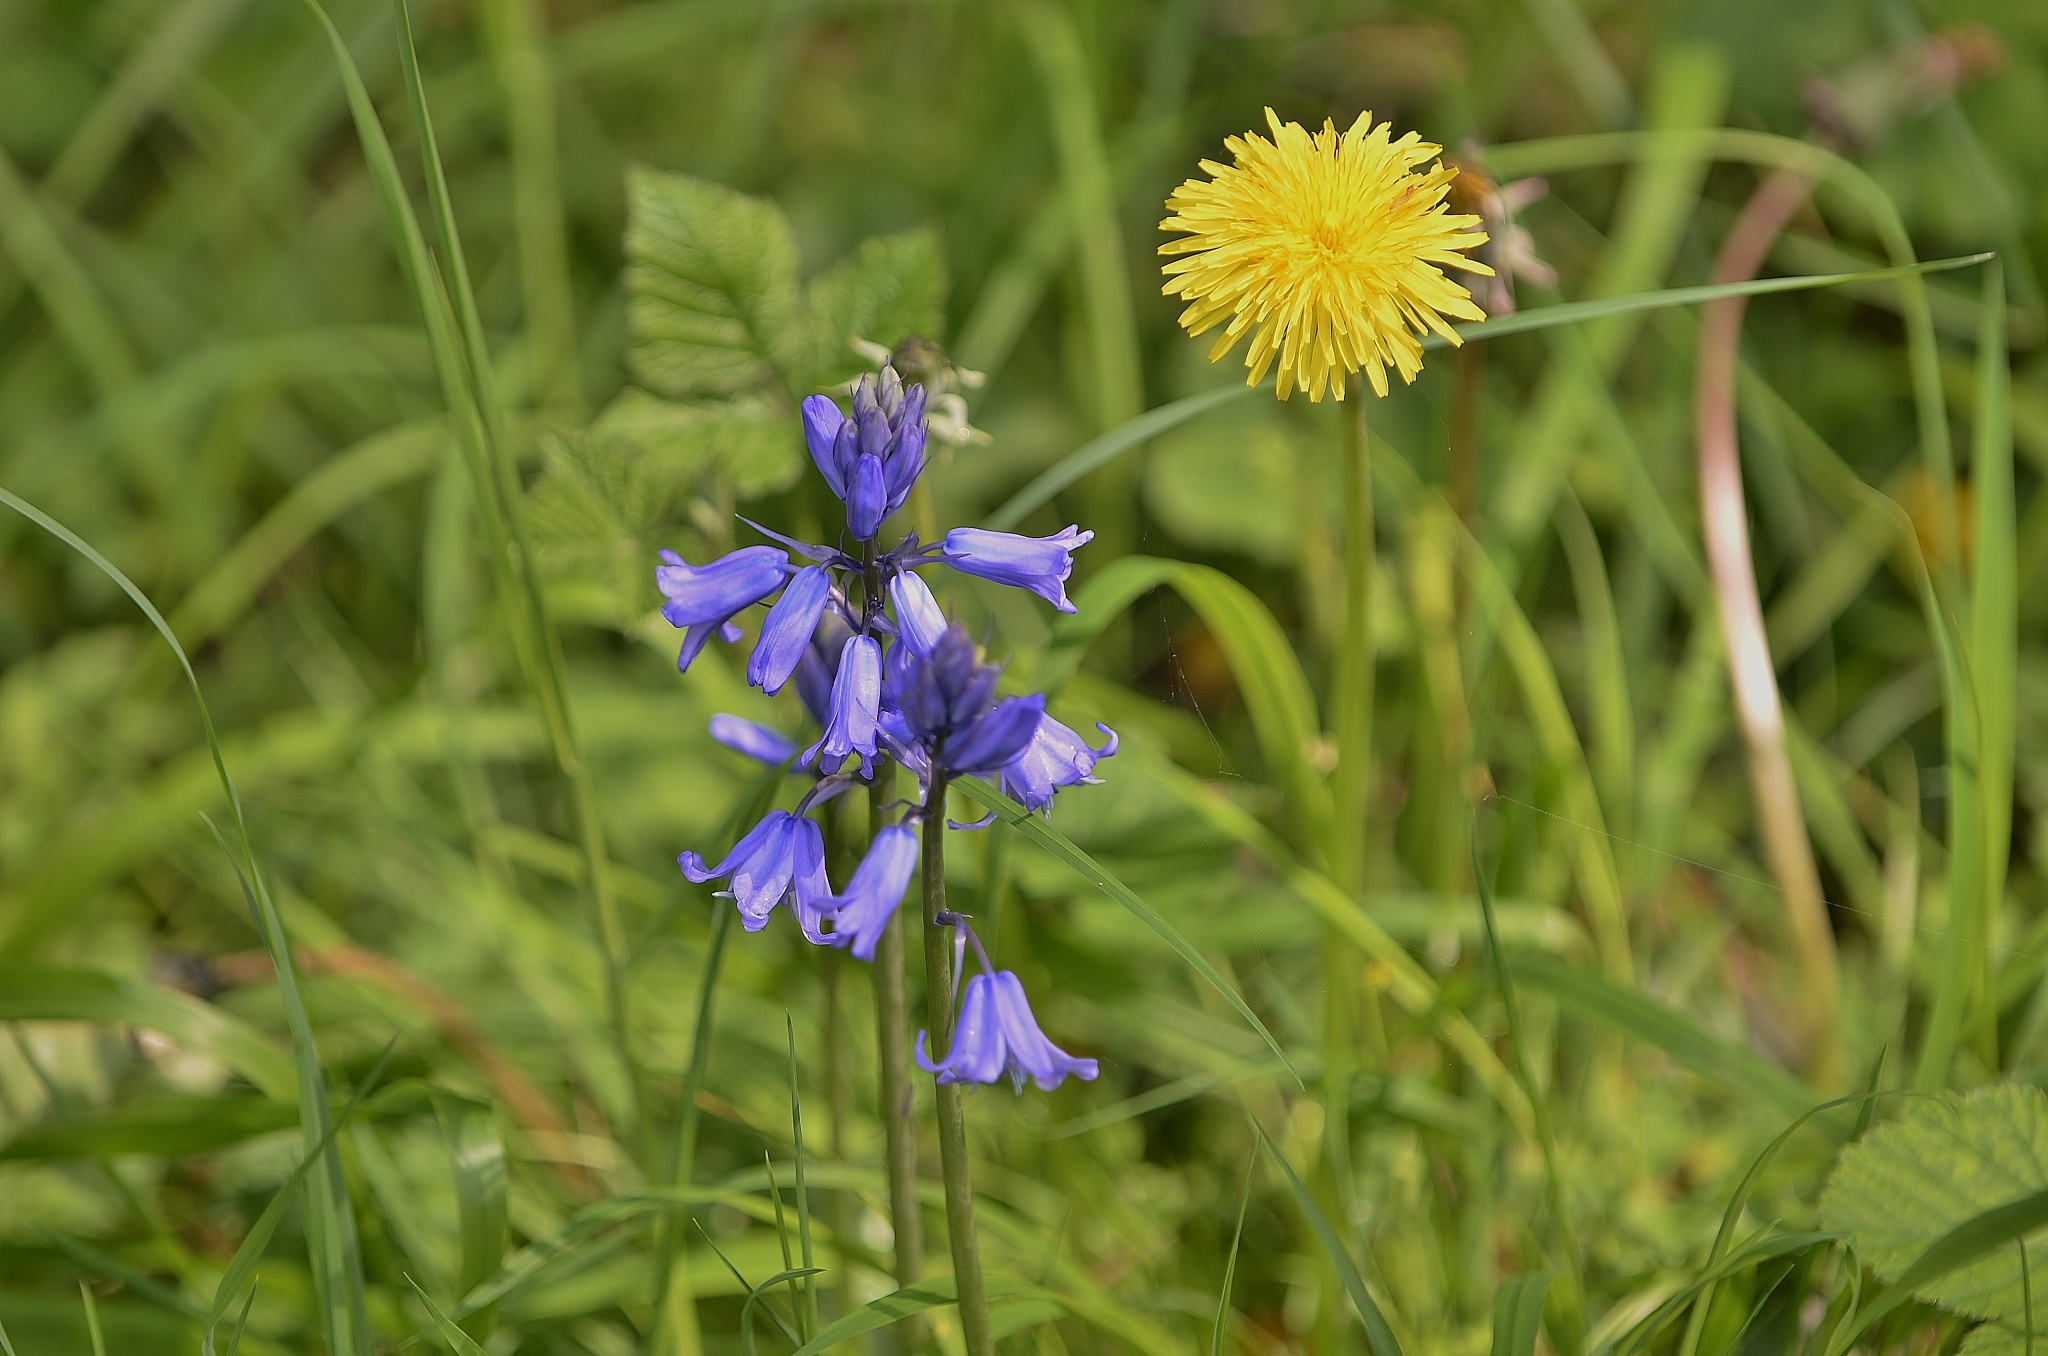 Bluebell and Dandelion by melaniehartshorn40